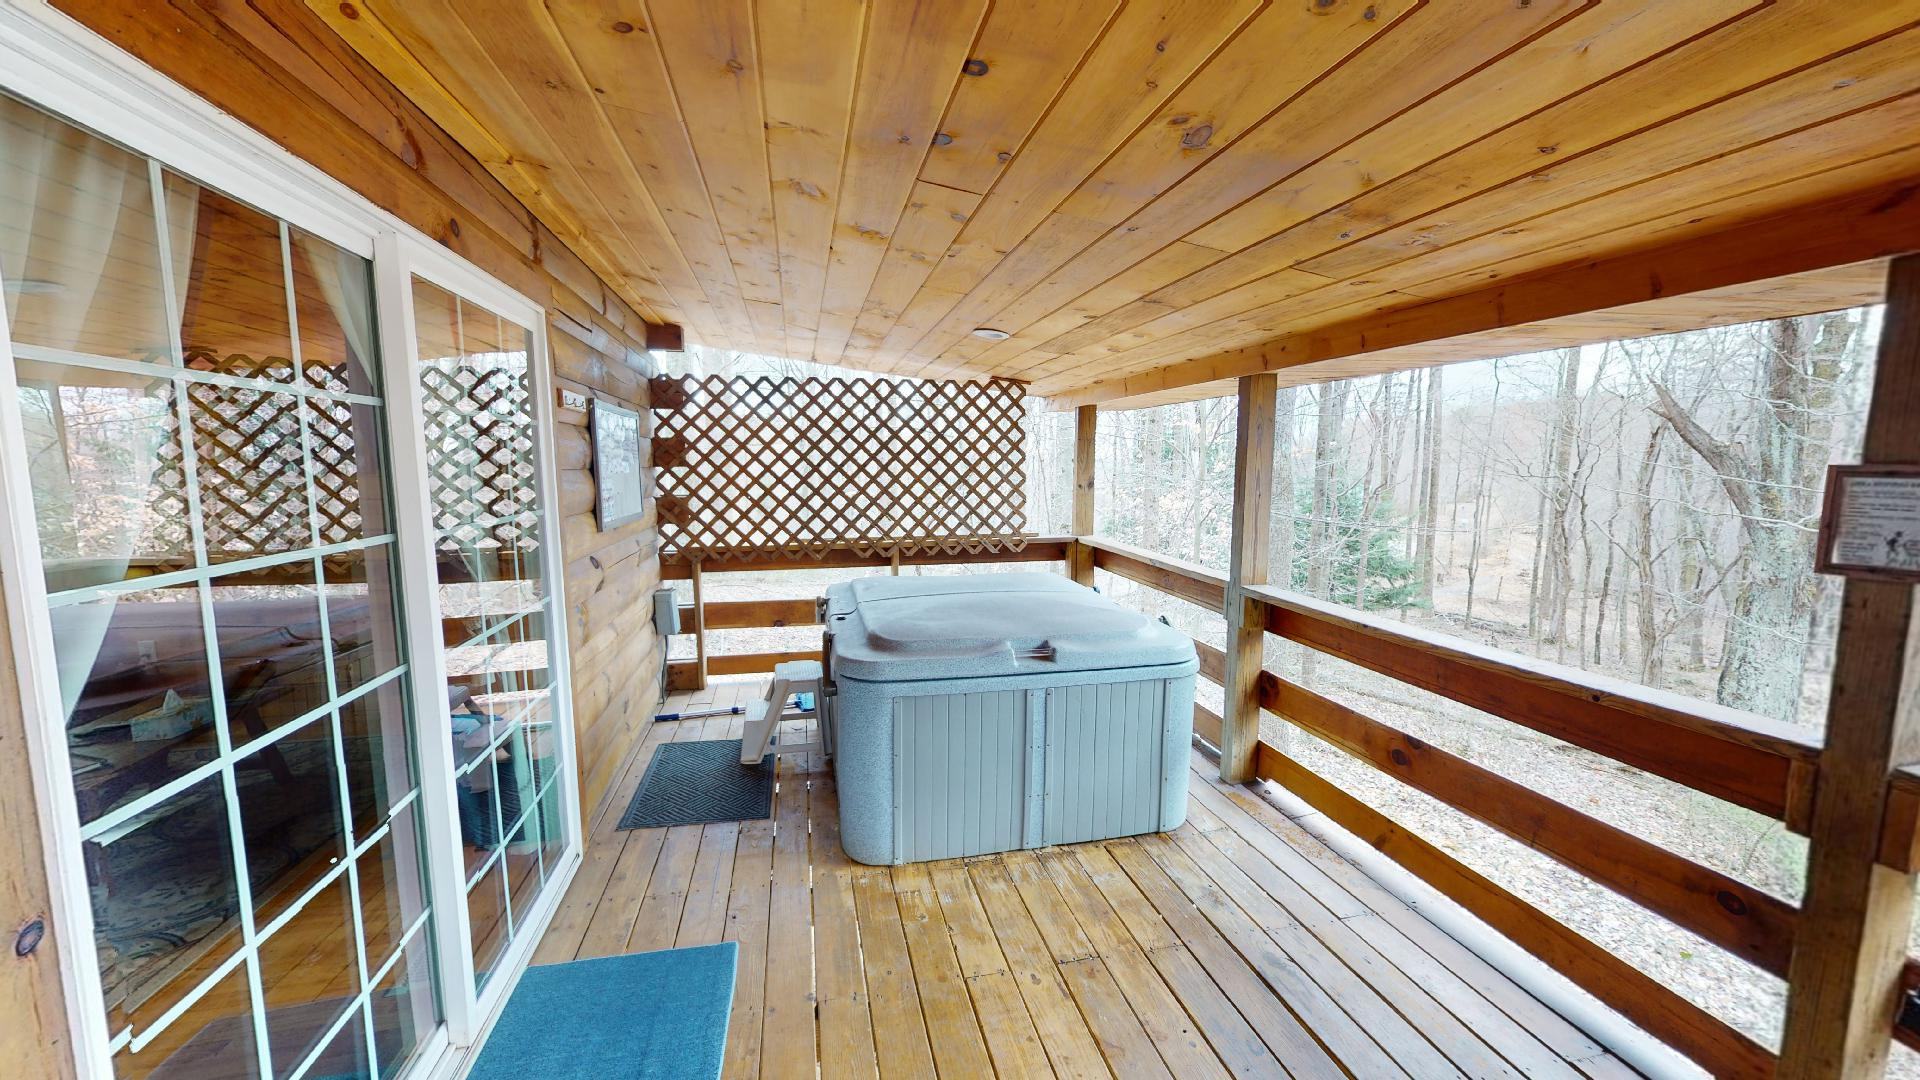 The Landing - Private 2 person hot tub on back porch.